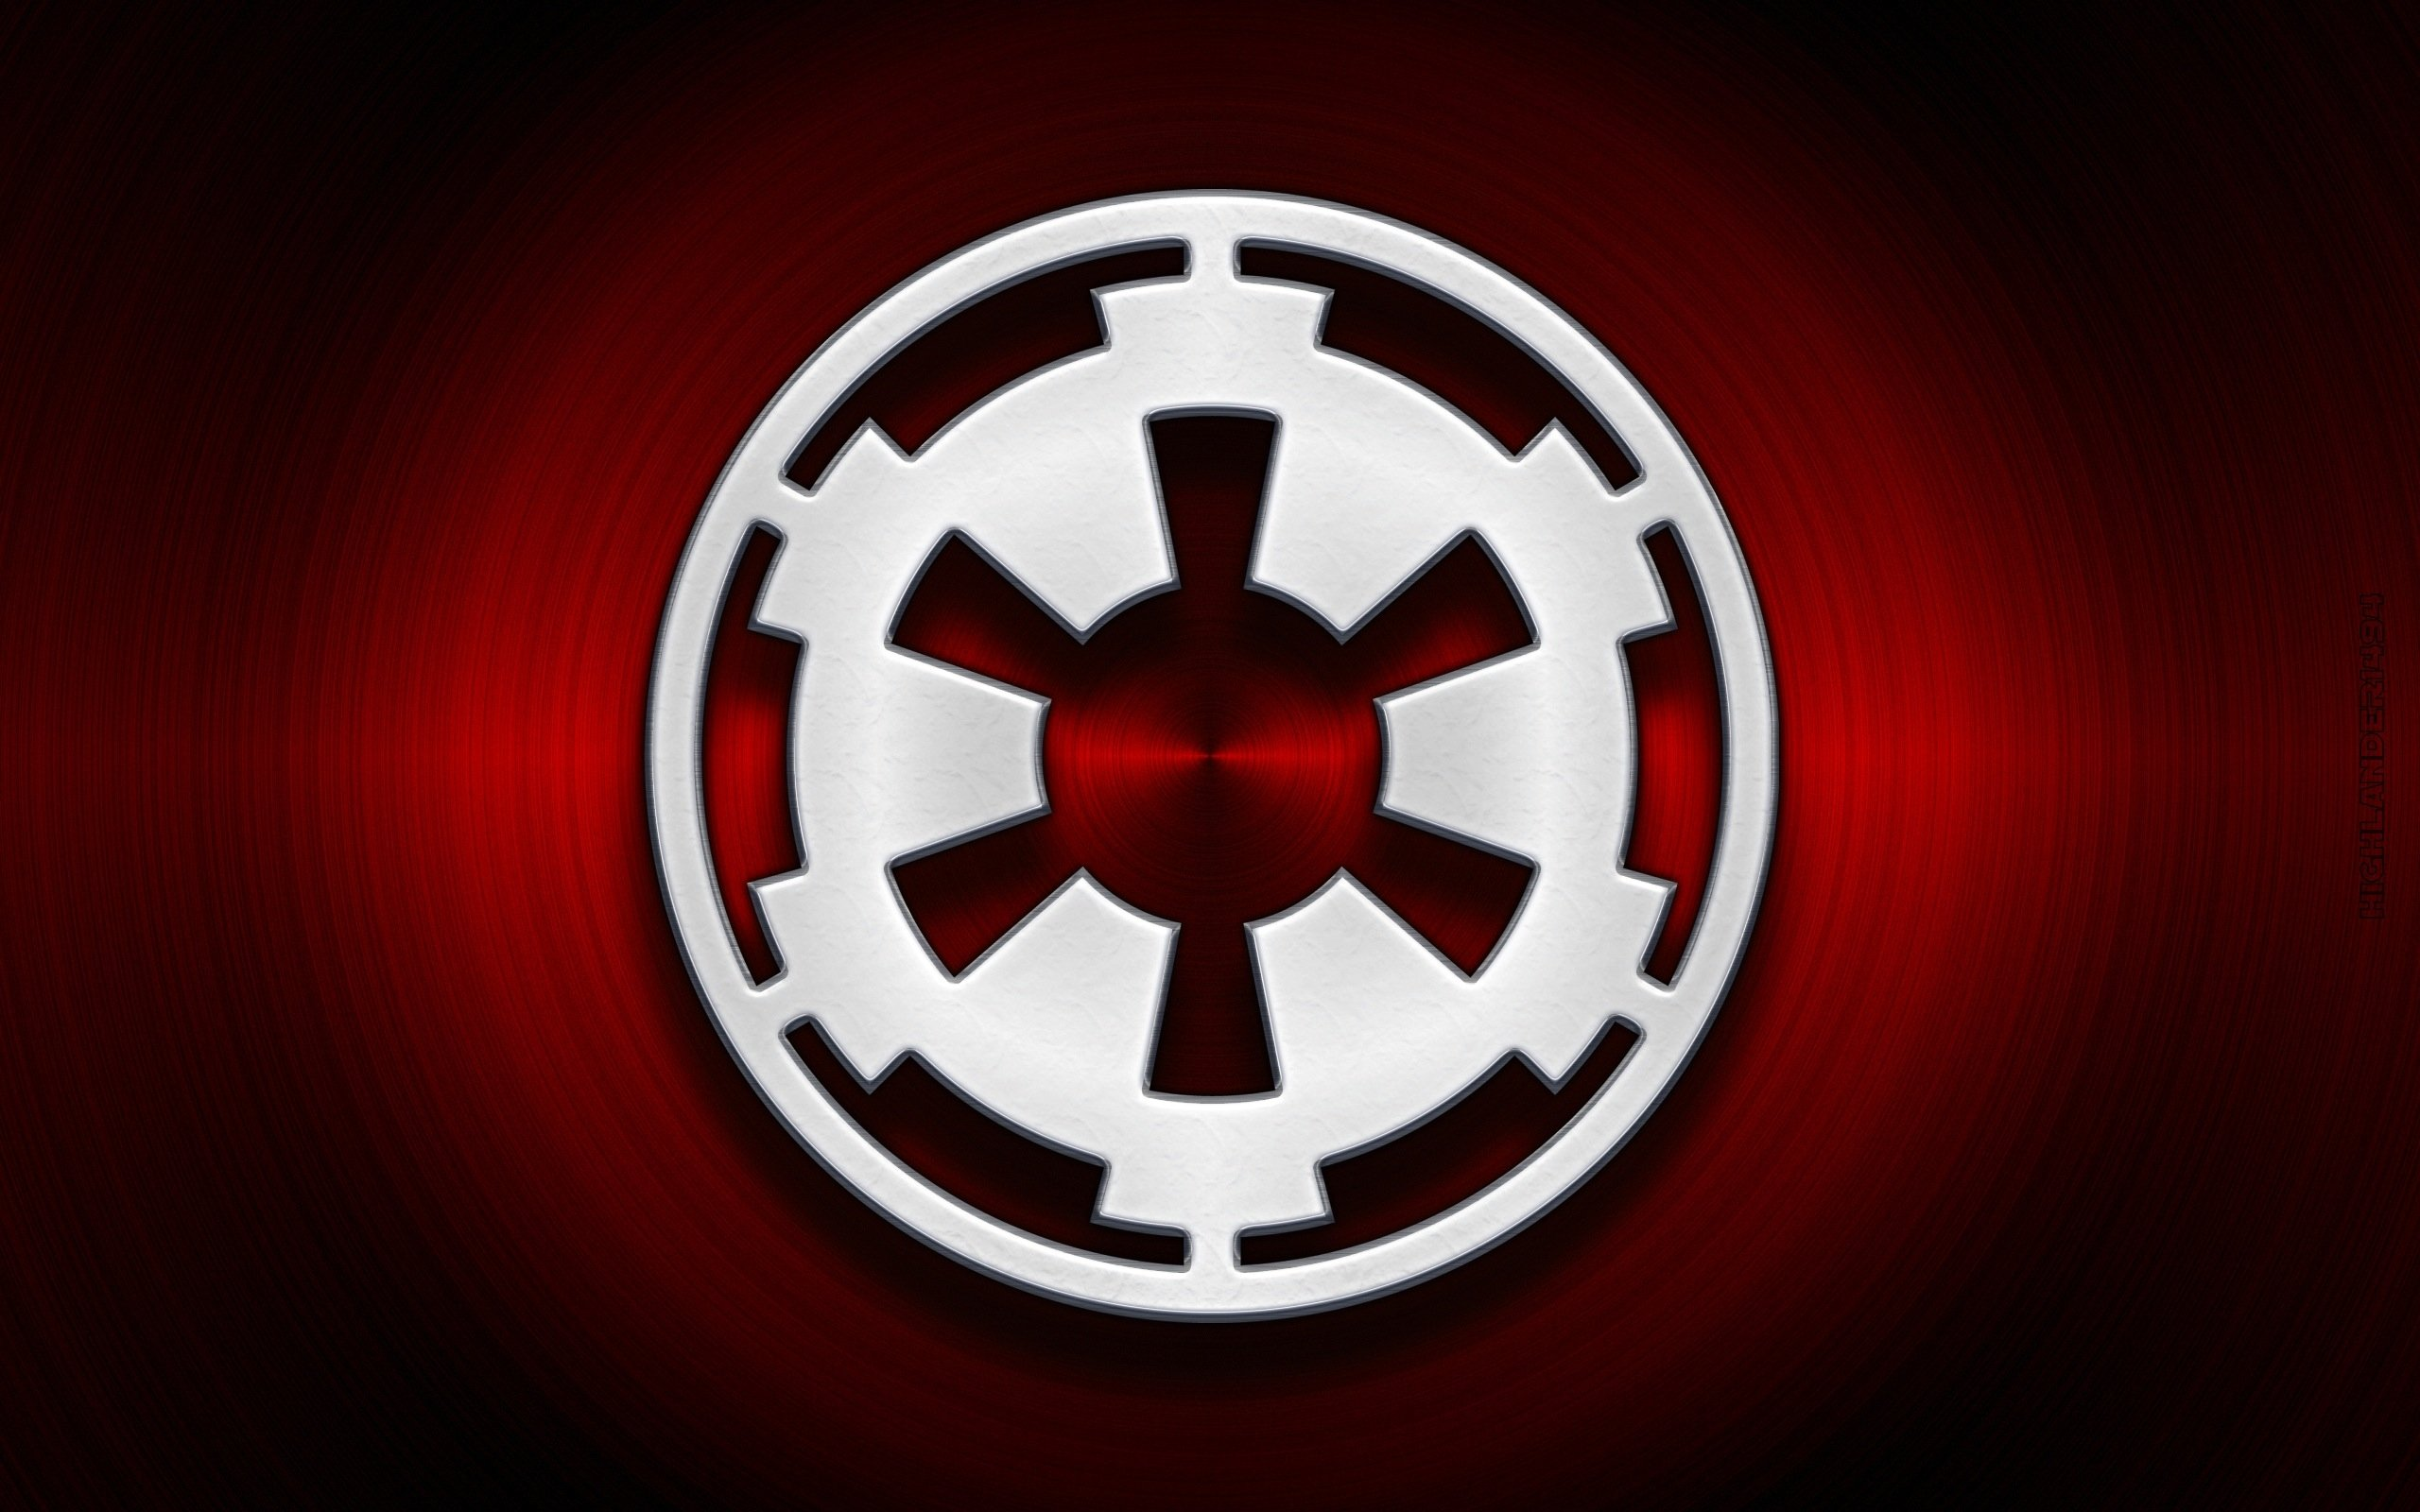 48 Star Wars Empire Logo Wallpaper On Wallpapersafari